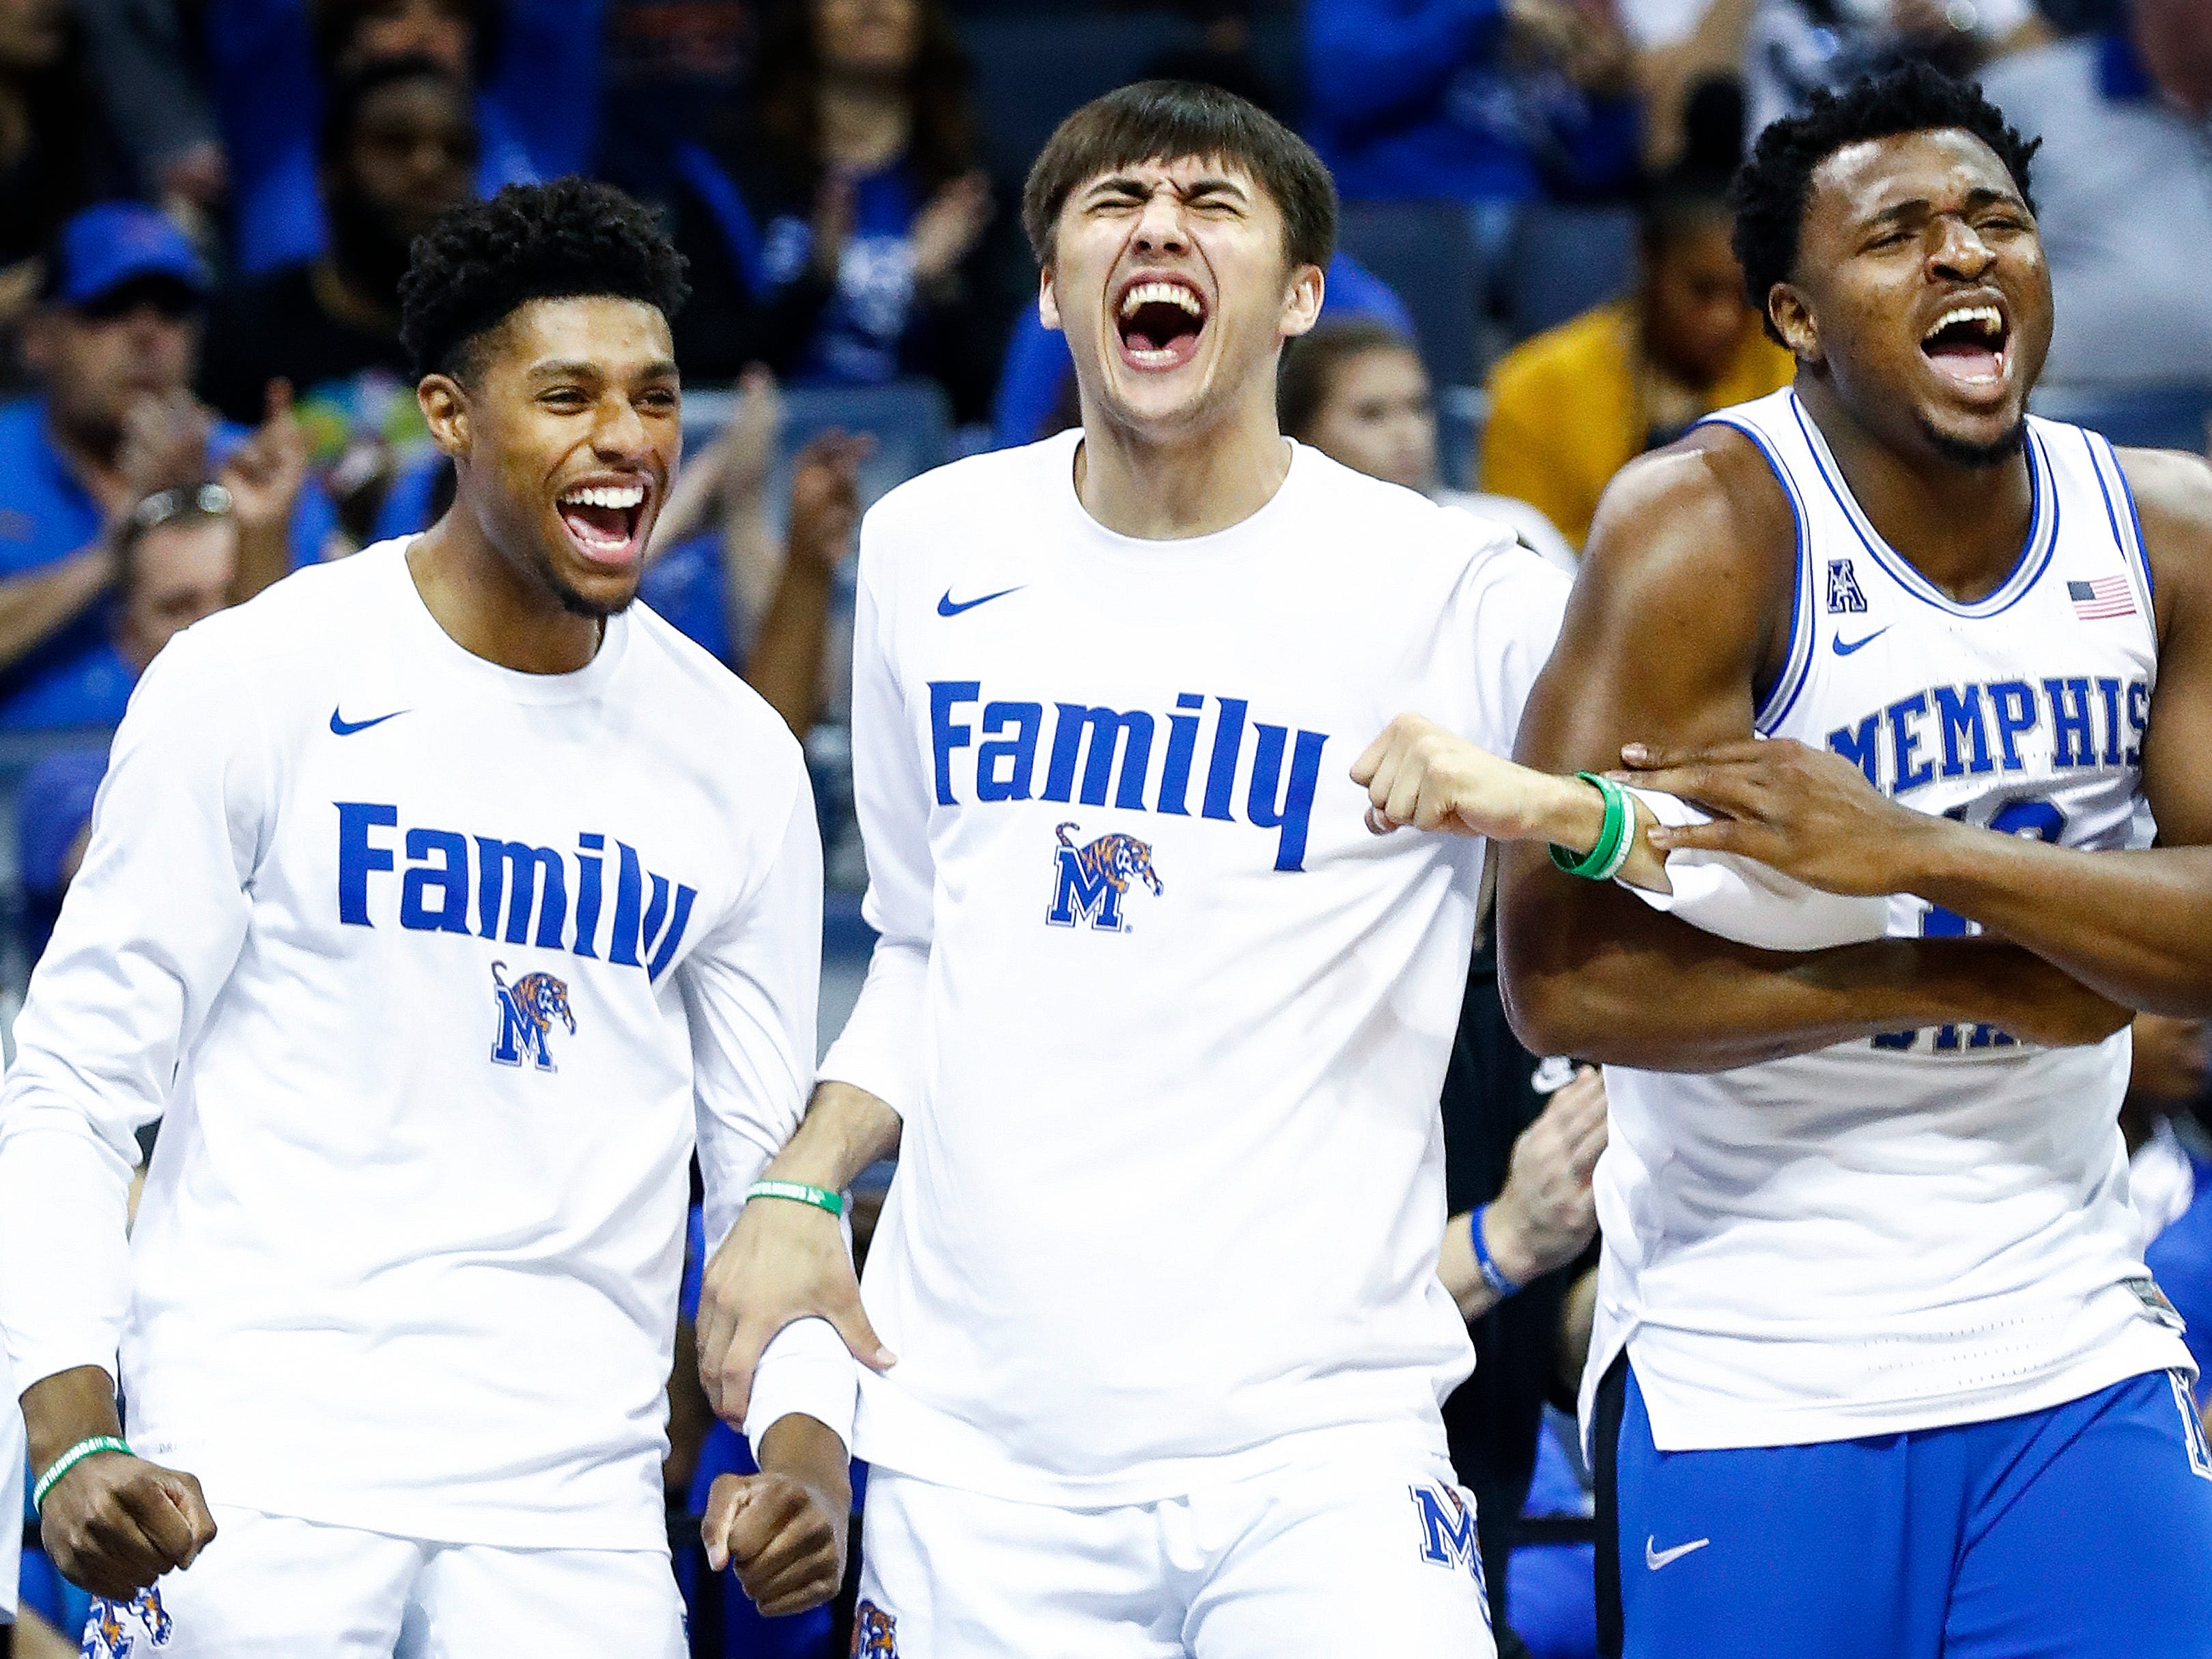 Memphis teammates (left to right) Ryan Boyce, David Wingett and Victor Enoh celebrate during a 83-68 victory over Tulane in their first round AAC Tournament game at the  FedExForum, Thursday, March 14, 2019.